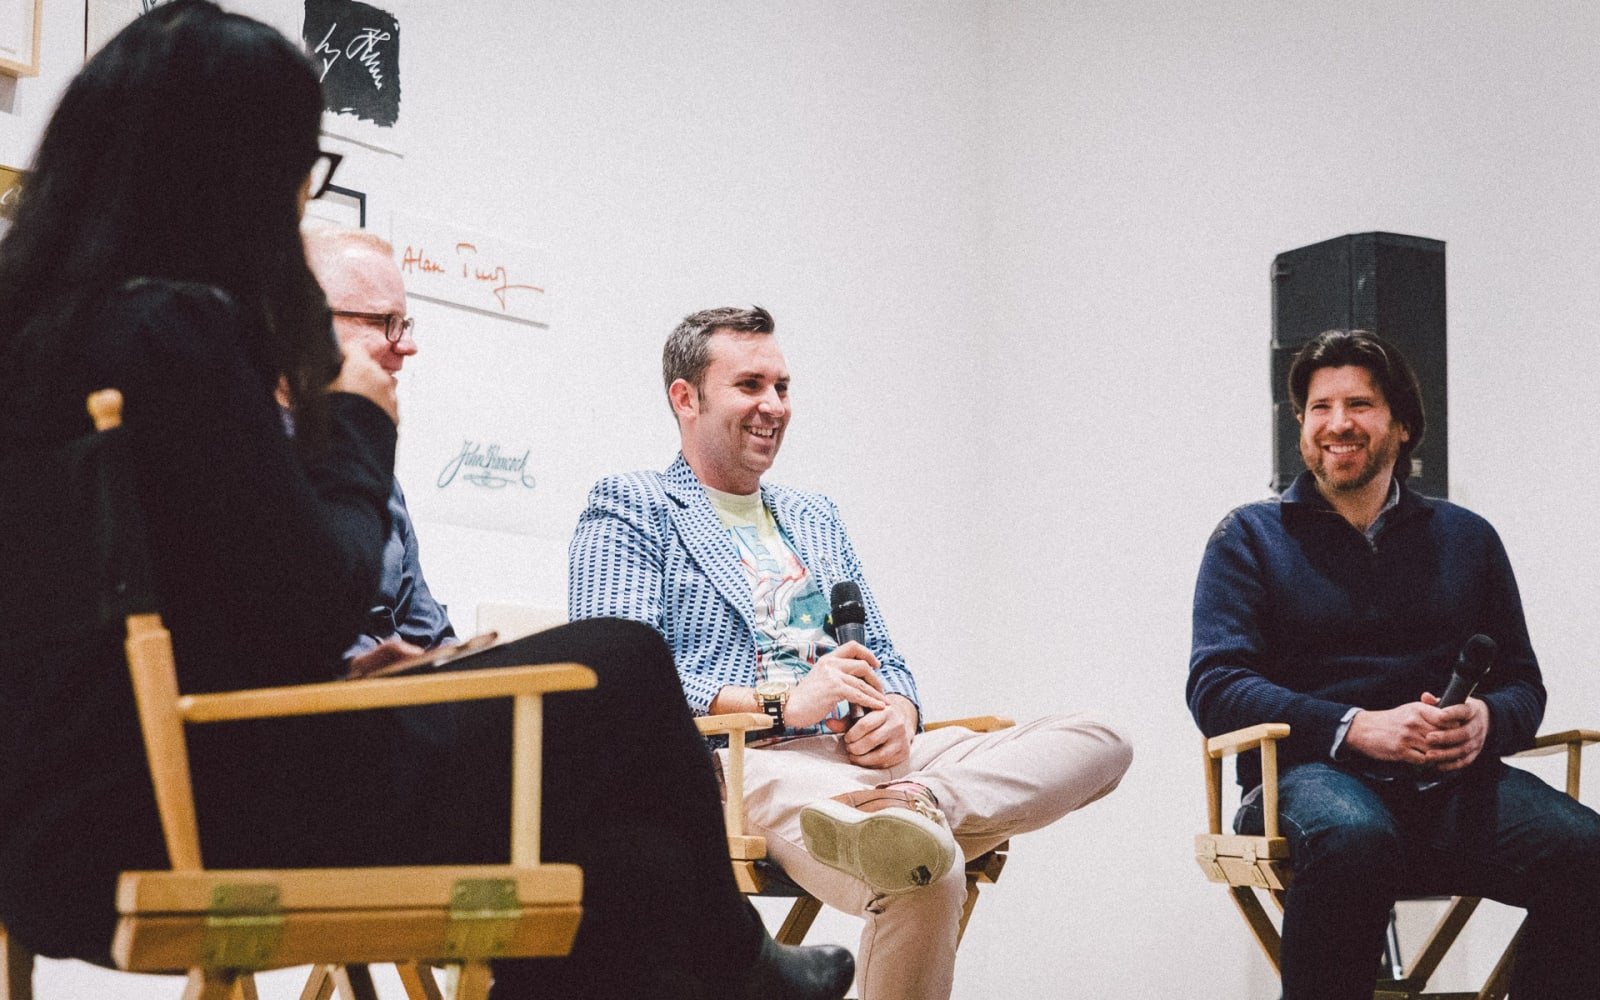 Art Innovators Alliance panelists (L to R Moderator Elisa Mala, Nathan Richardson, Alex Mitow, Tony Aiazzi) at the Postmasters Gallery event in March. Photography by Erik Erikson.